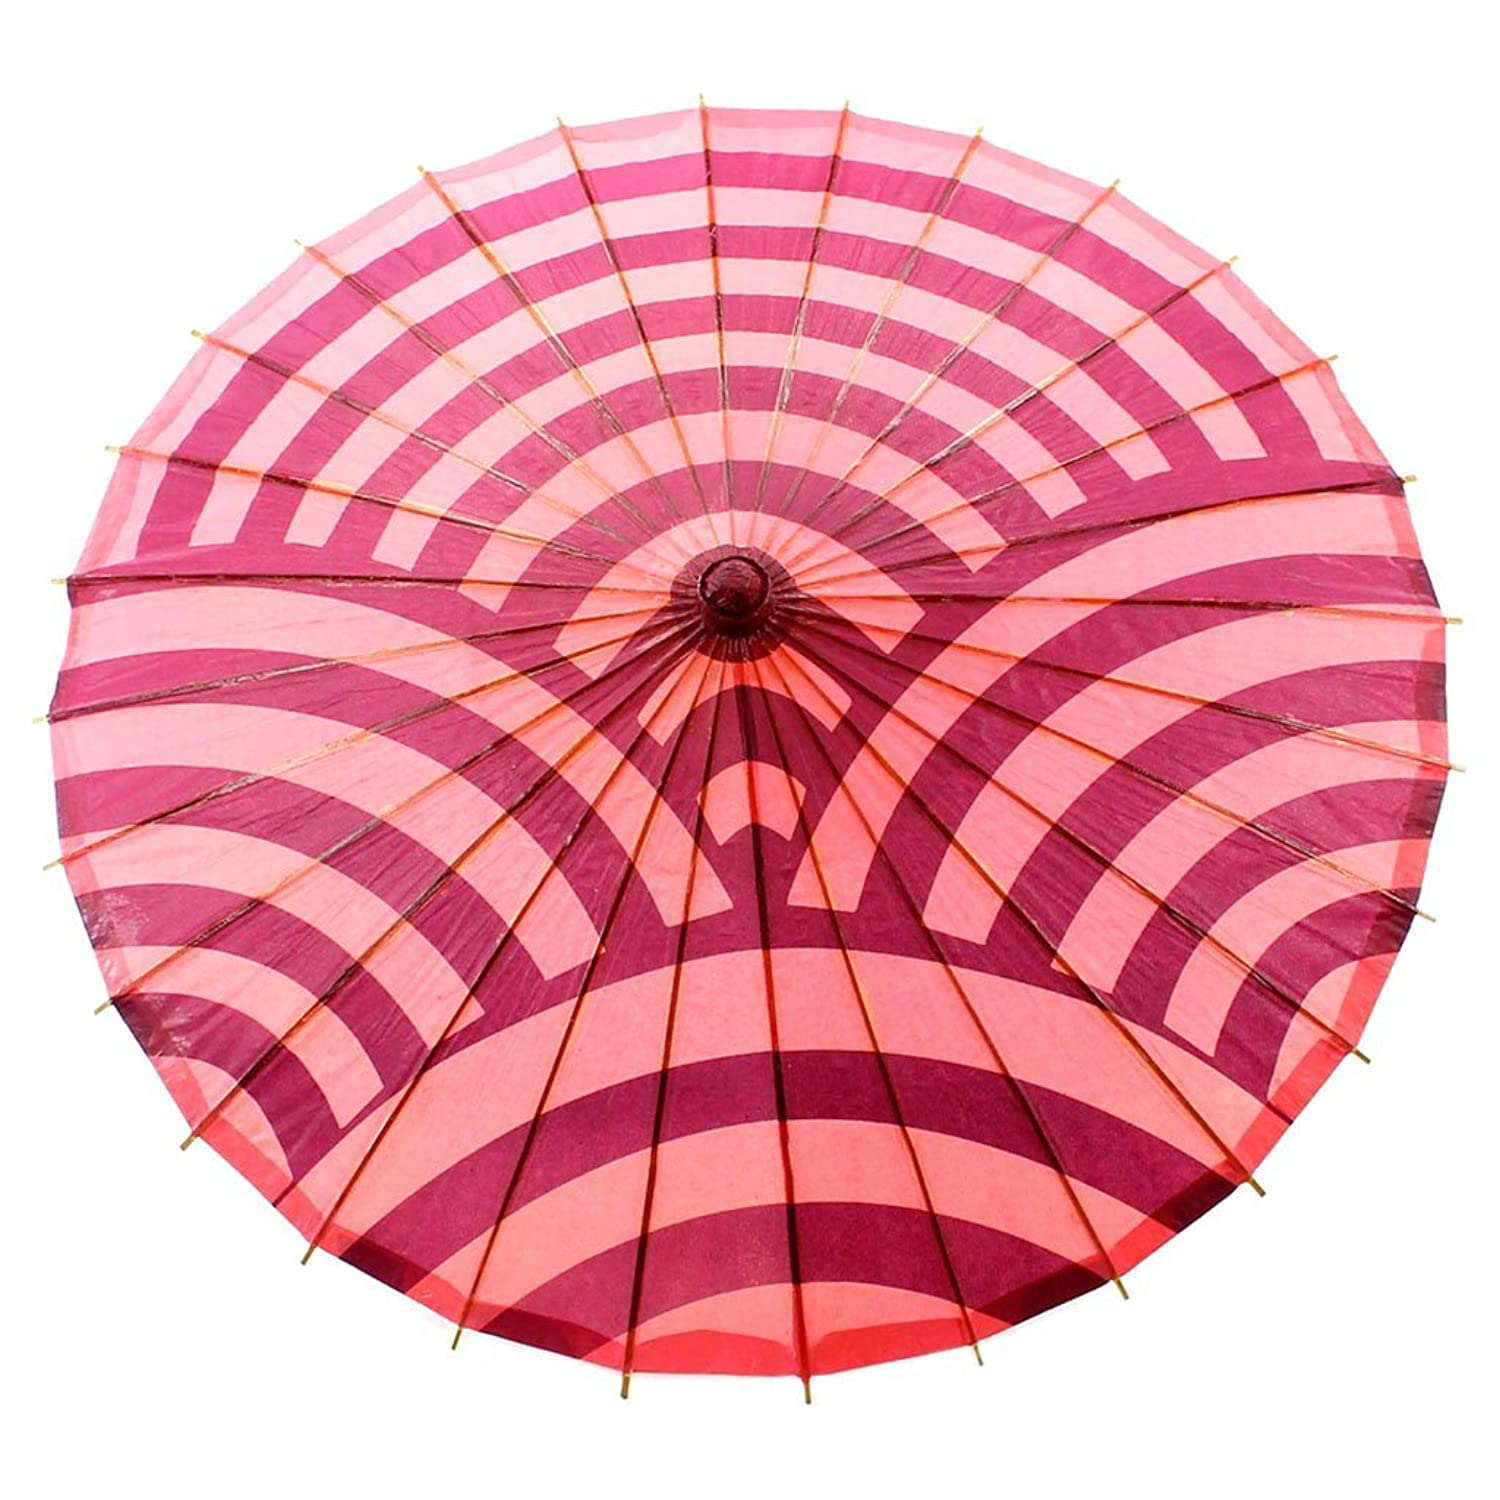 Vintage Style Parasols and Umbrellas Sunrise Curves Paper Parasol $15.99 AT vintagedancer.com